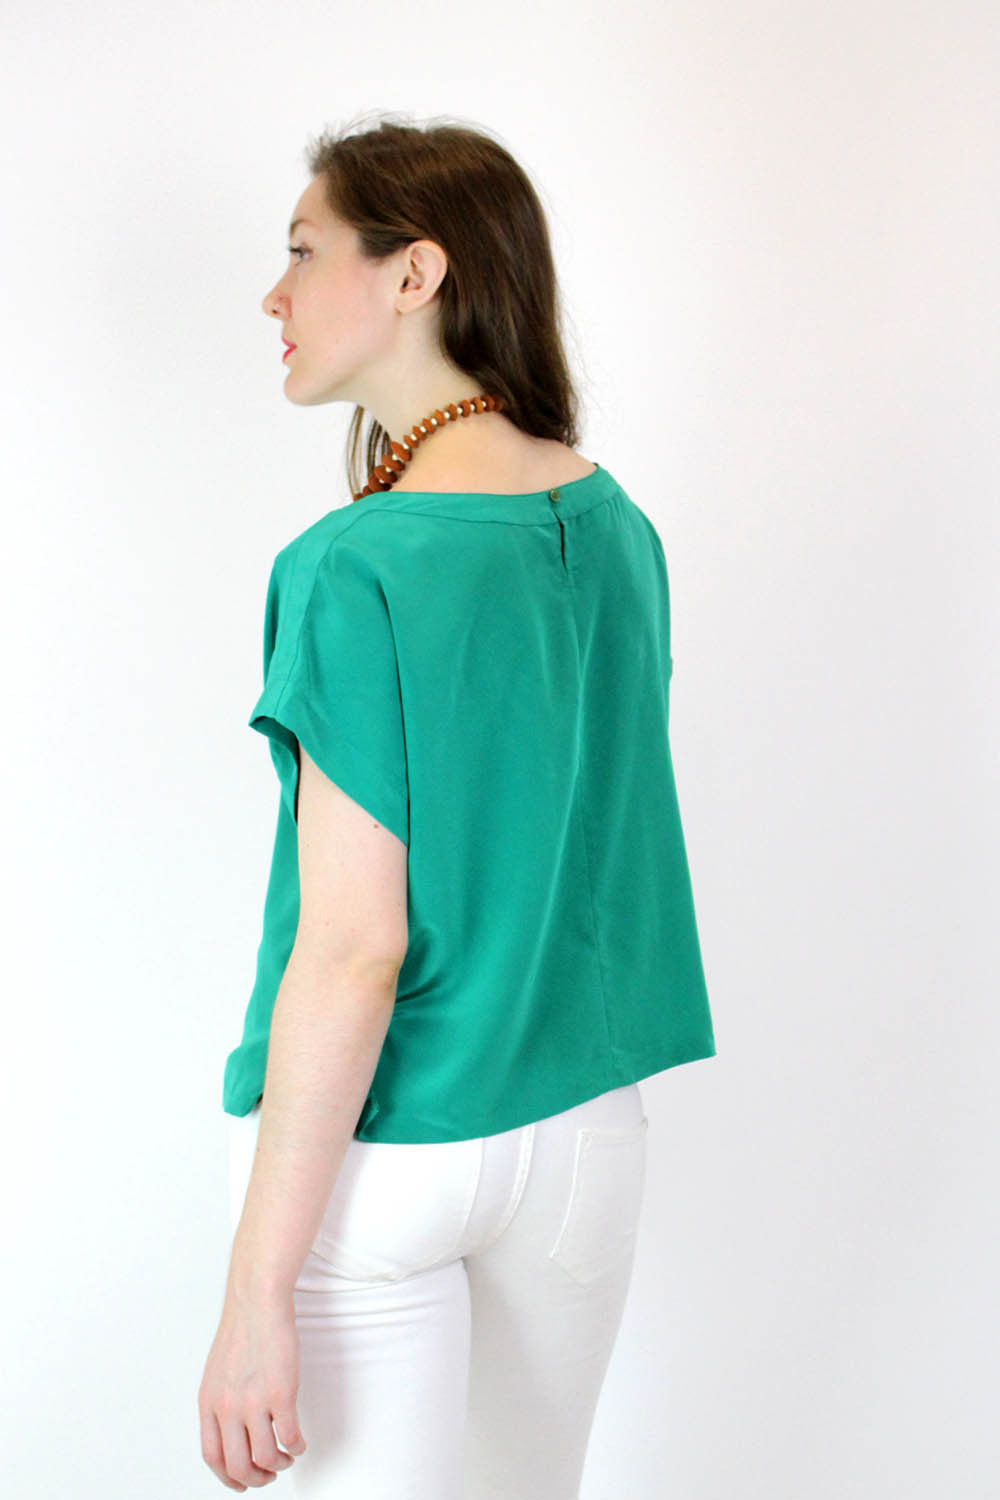 Kelly Green Silky Boxy Top M/L